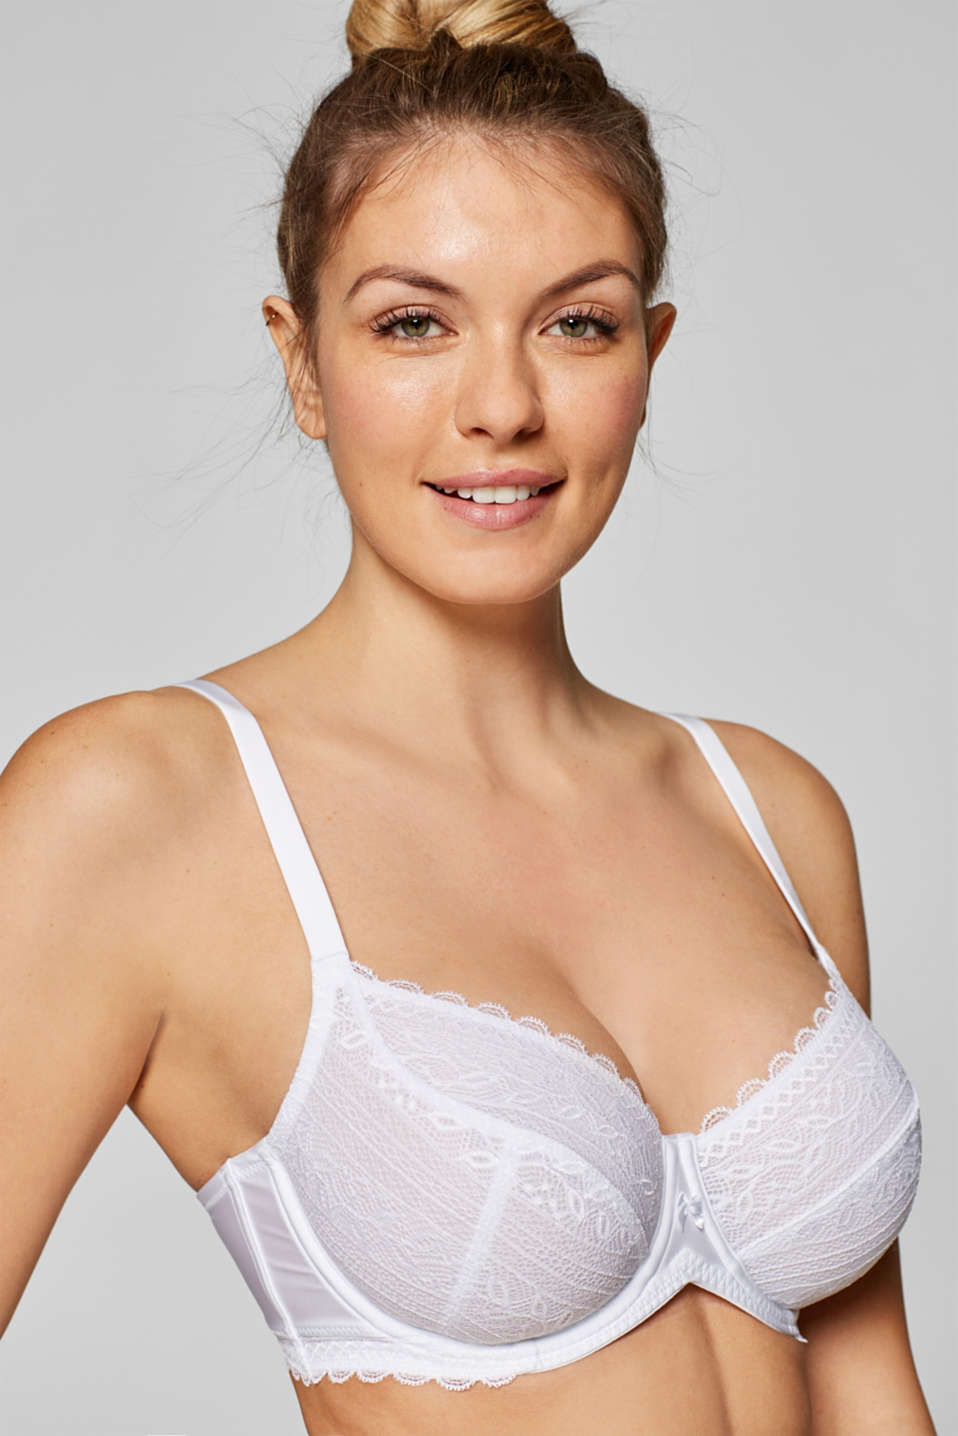 Esprit - Unpadded underwire bra in crocheted lace for larger cup sizes